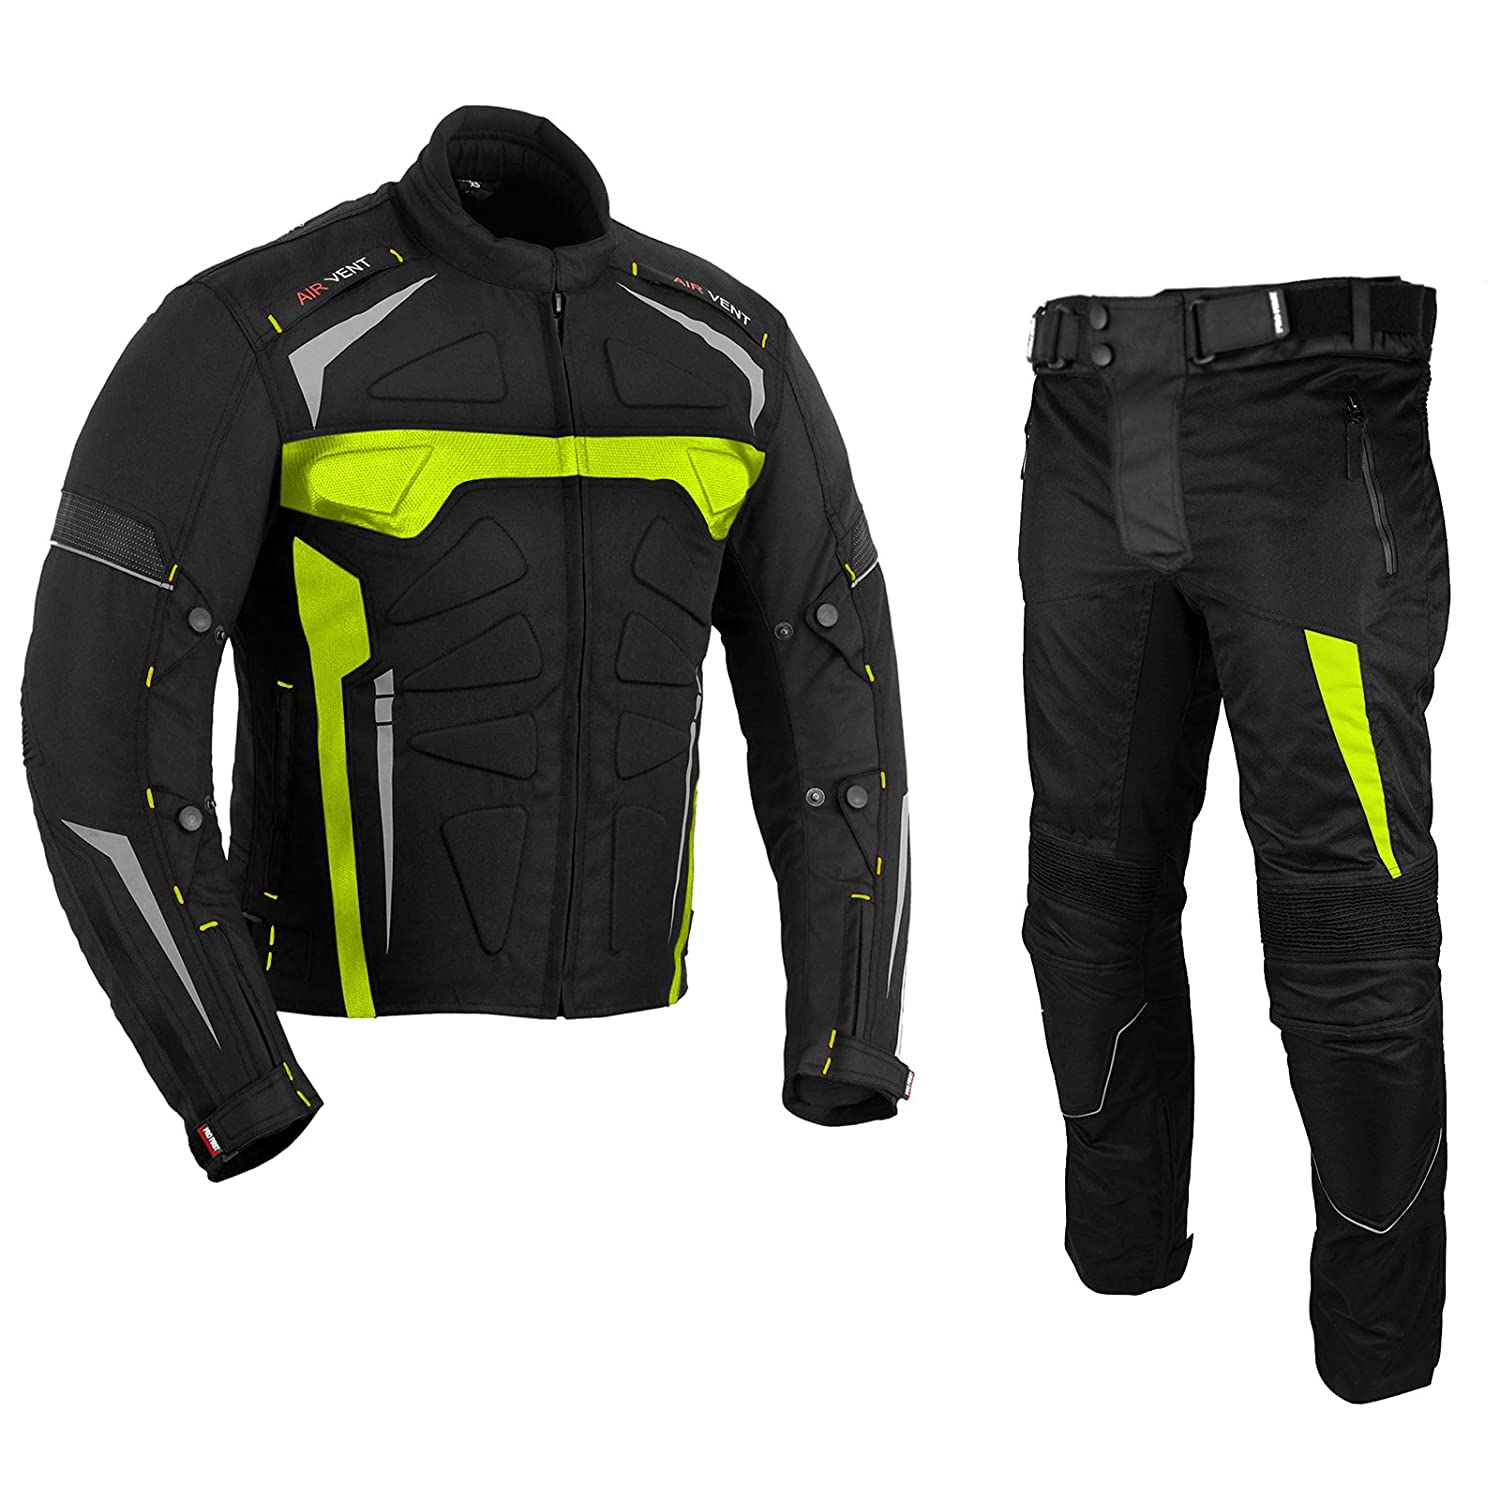 Waterproof Motorbike Suits Motorcycle Armor Suit Bike Rider Suit 2 piece Suit Motorbike Racing Suit All Weather Wearing Suit CE Armour for Mens Boys